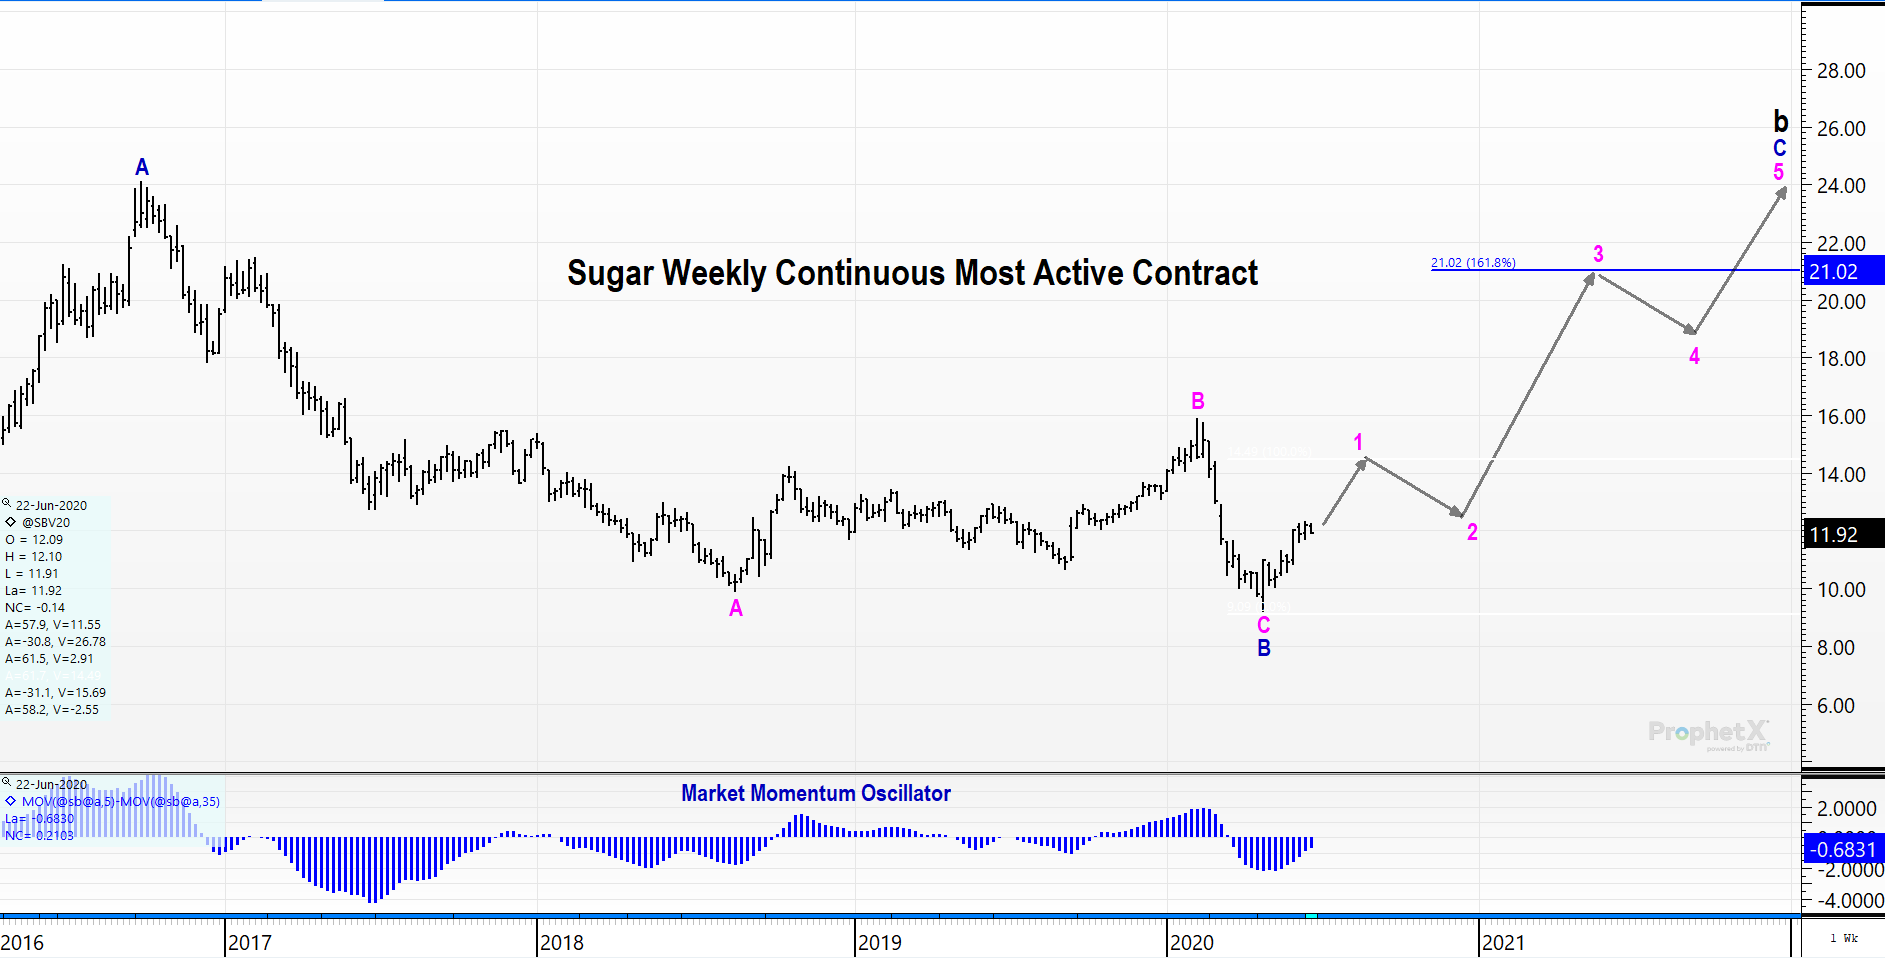 Sugar Futures Continuous Contract